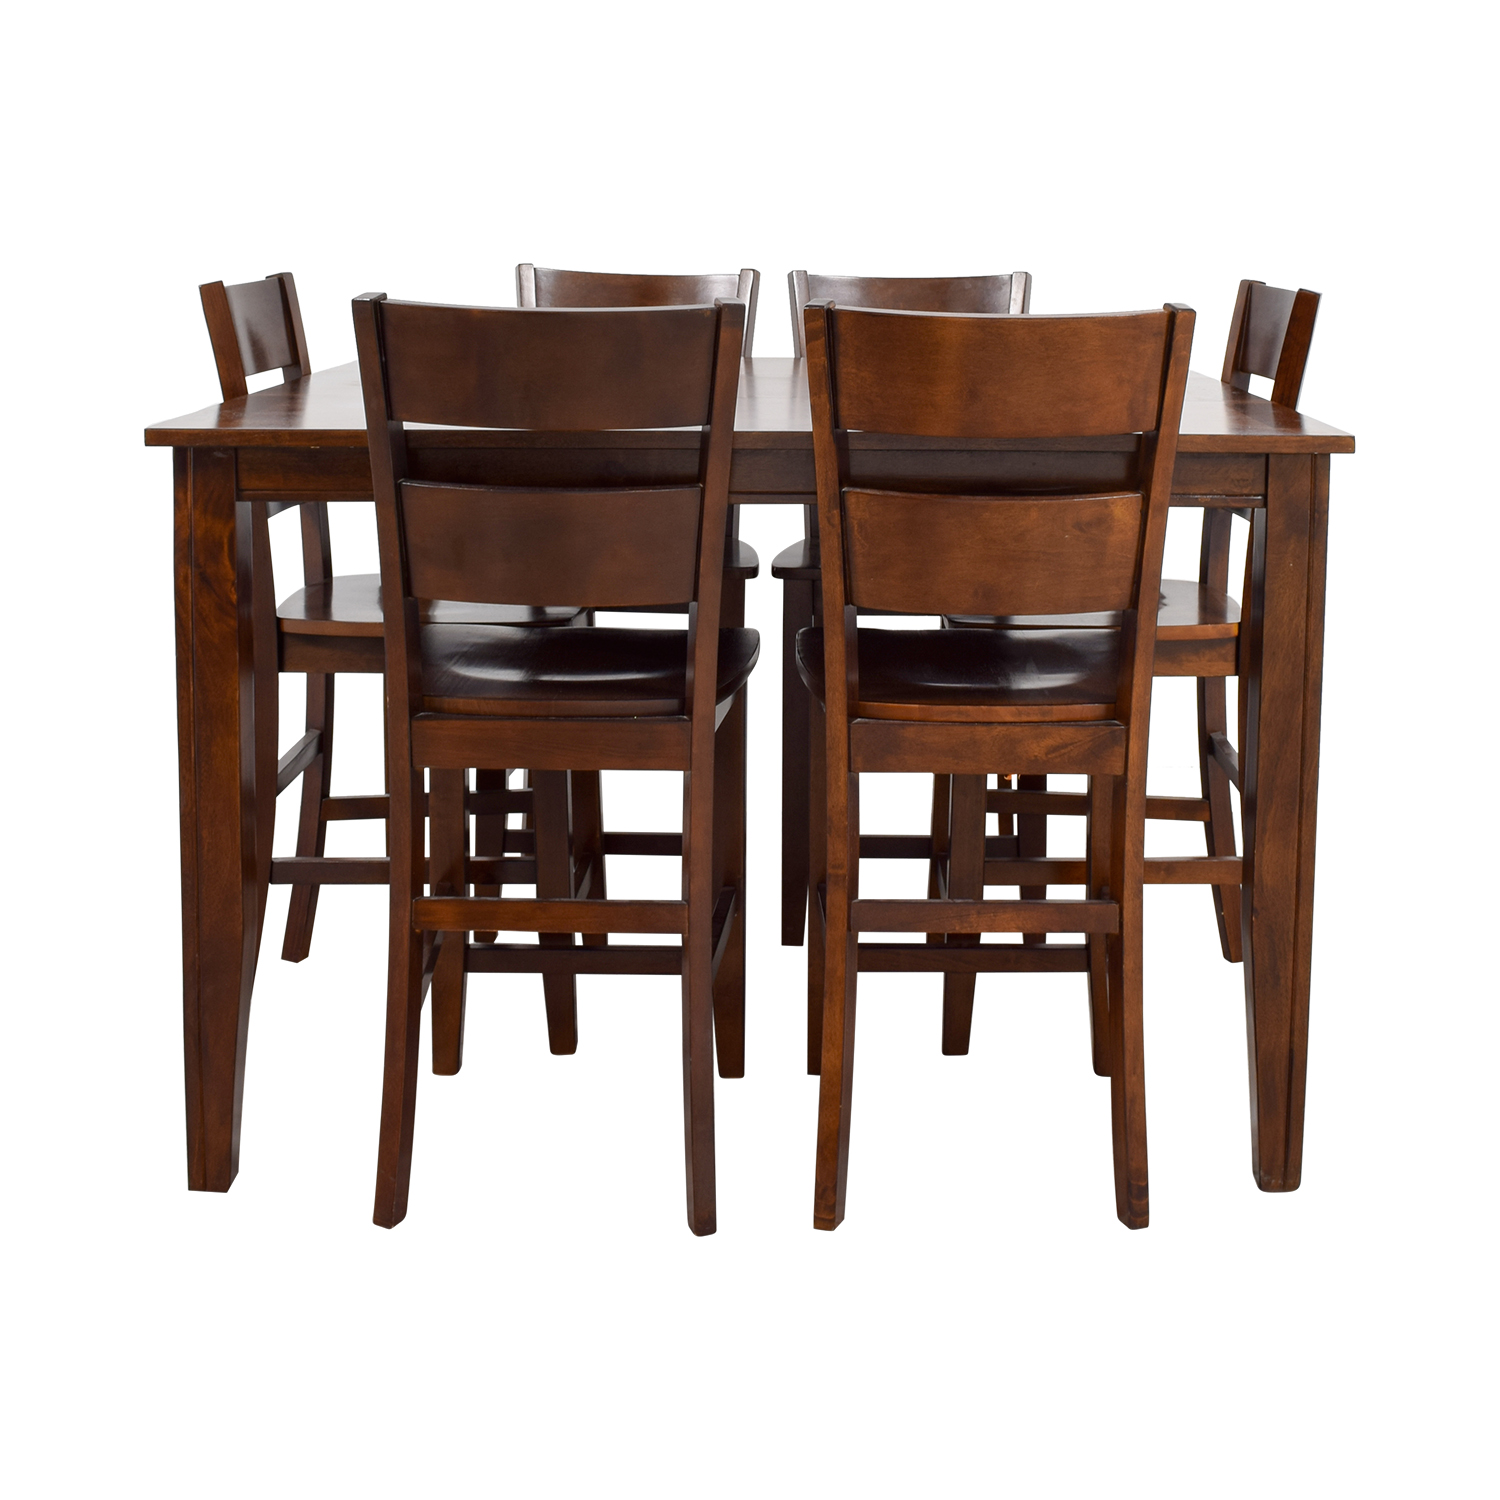 73 Off Bob S Furniture Bob S Furniture Wood Pub Dining Set Tables